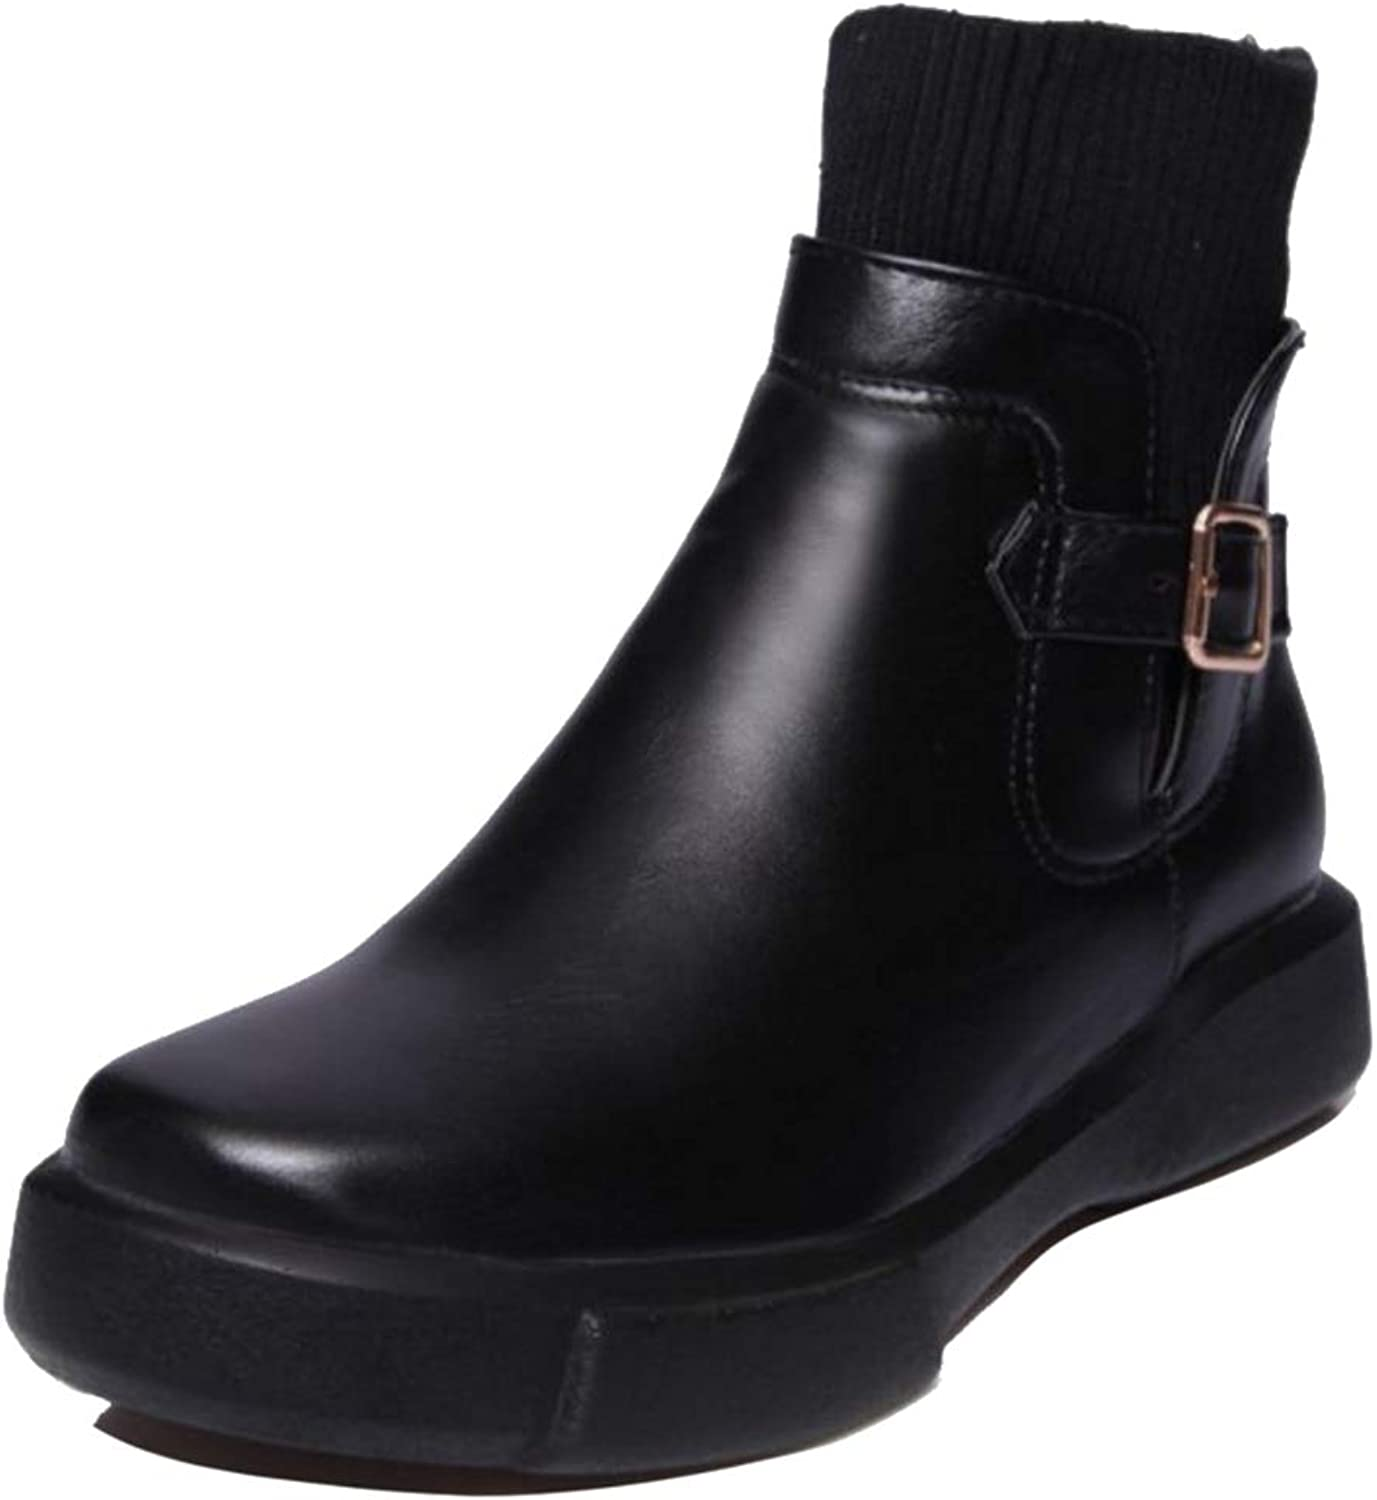 Onewus Women Casual Boots Sport Ankle Boots